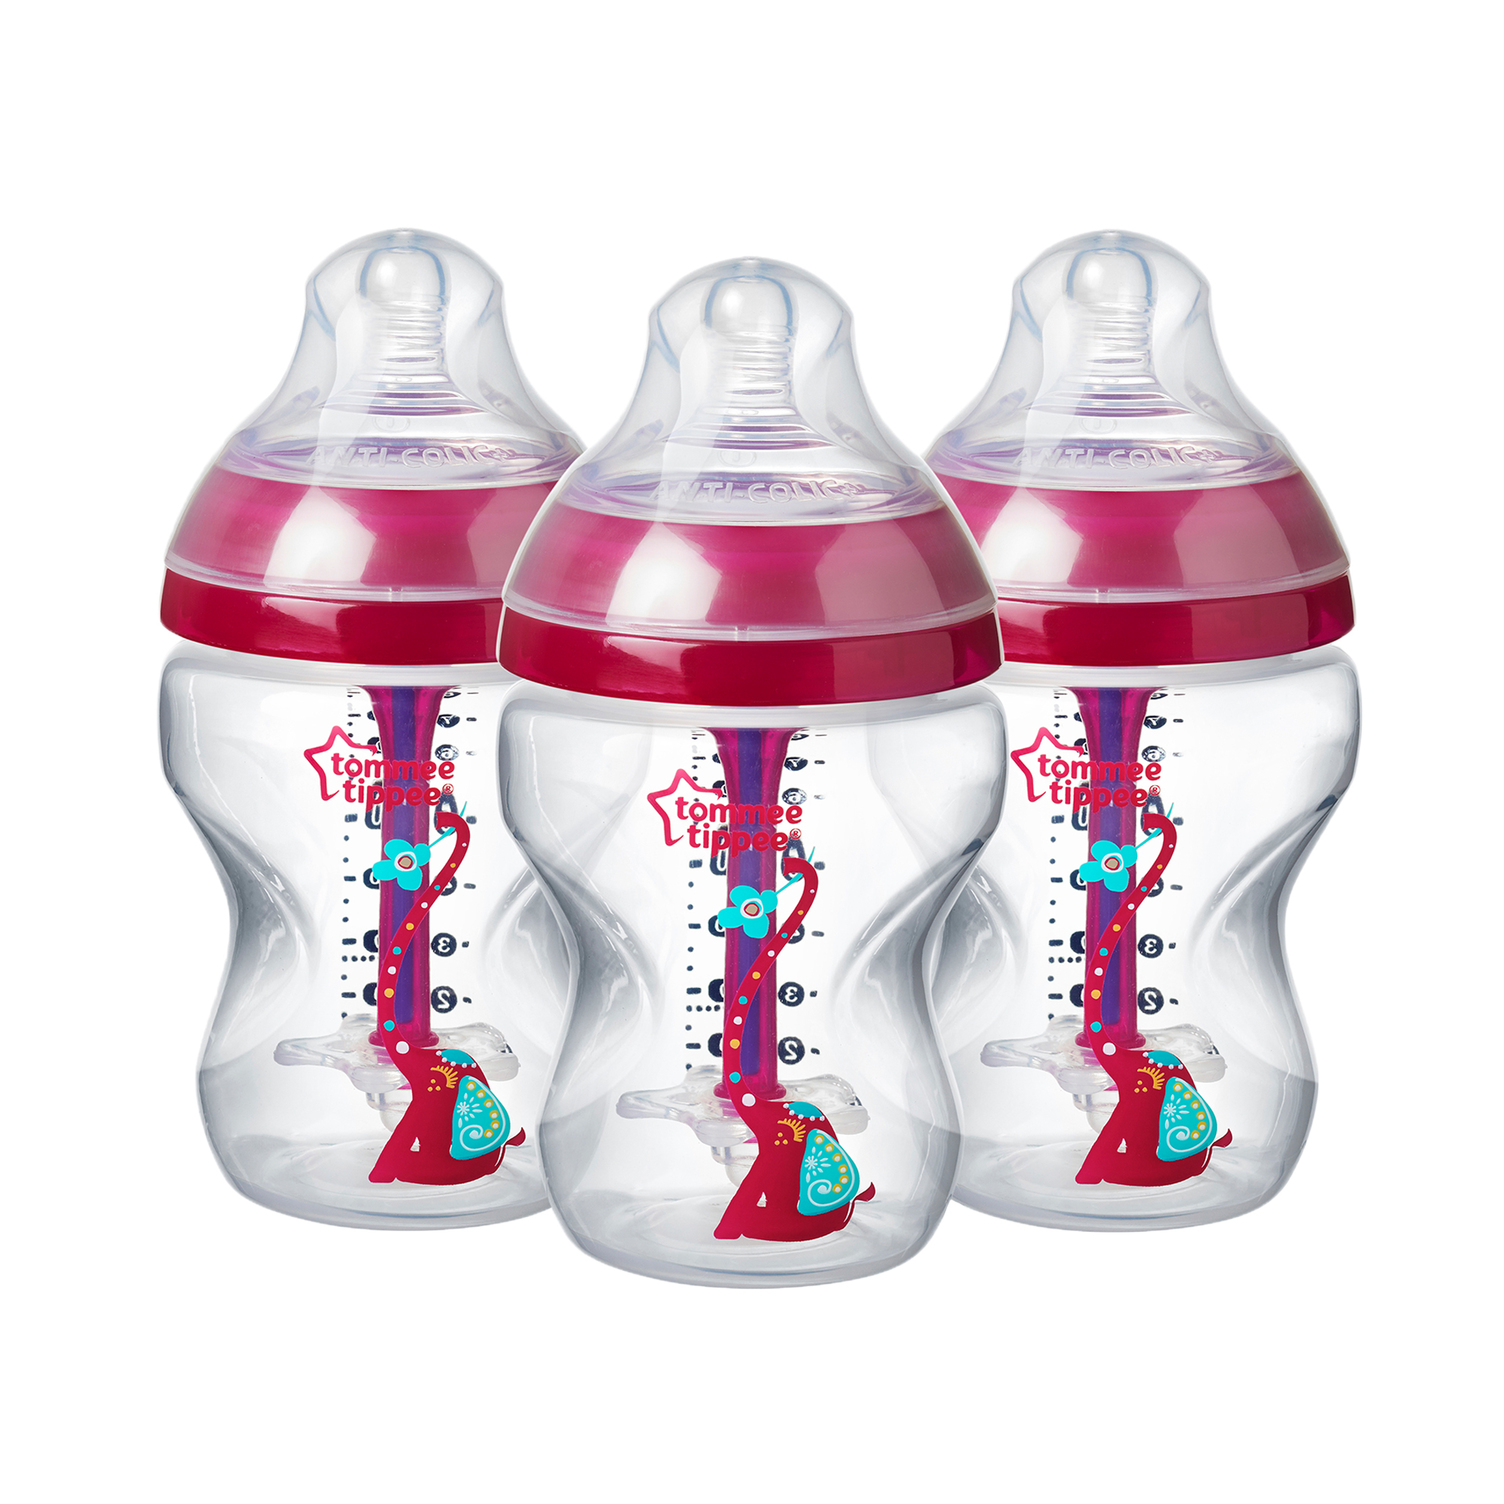 Tommee Tippee Advanced Anti-Colic Decorated Baby Bottles, Girl – 9 Ounce, Pink, 3 Count